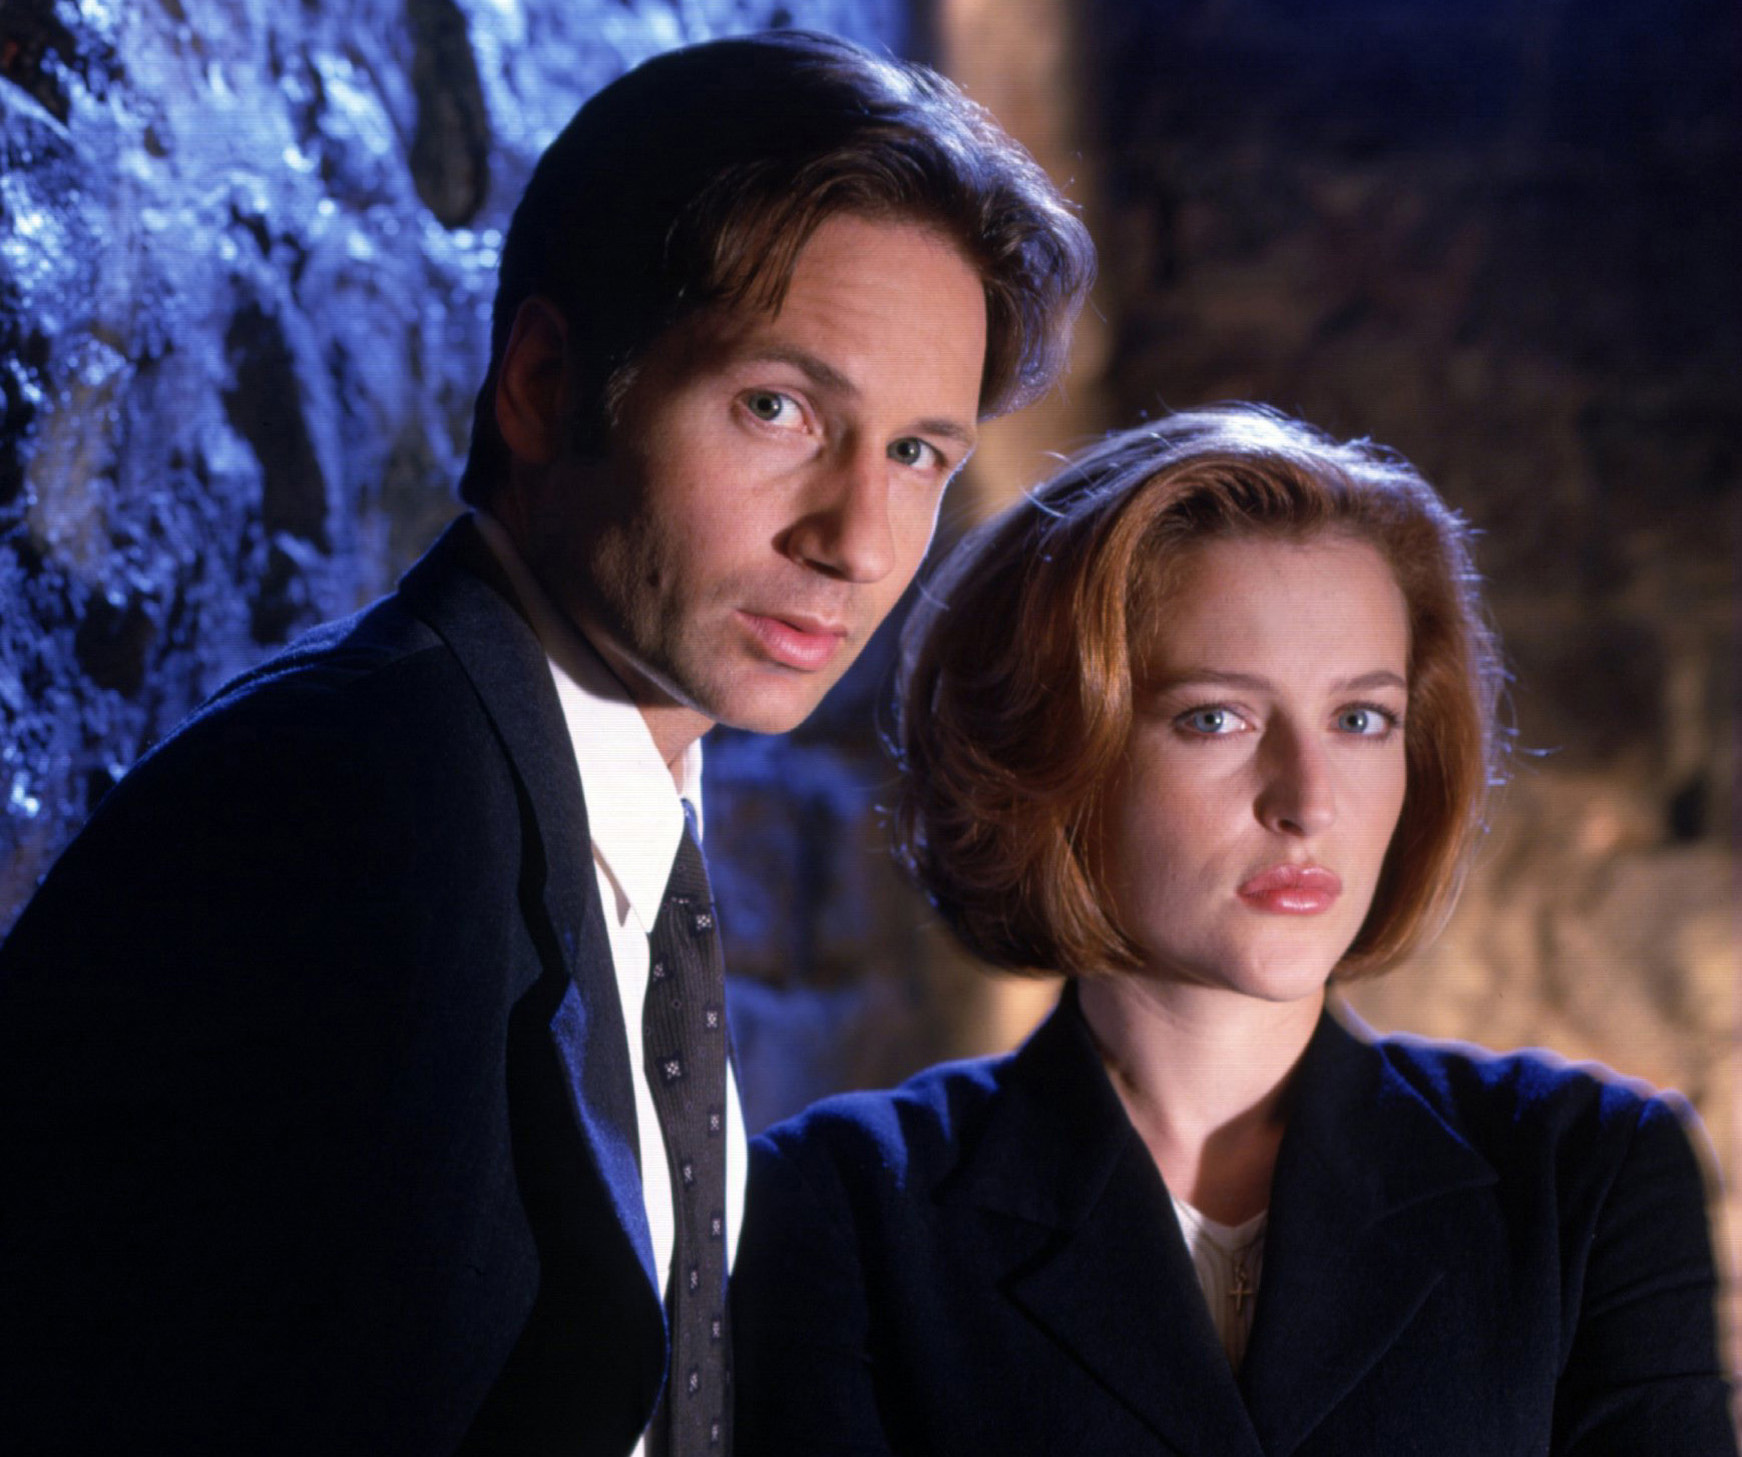 Last night, Mulder and Scully sang a duet, kissed. And now we're dying.